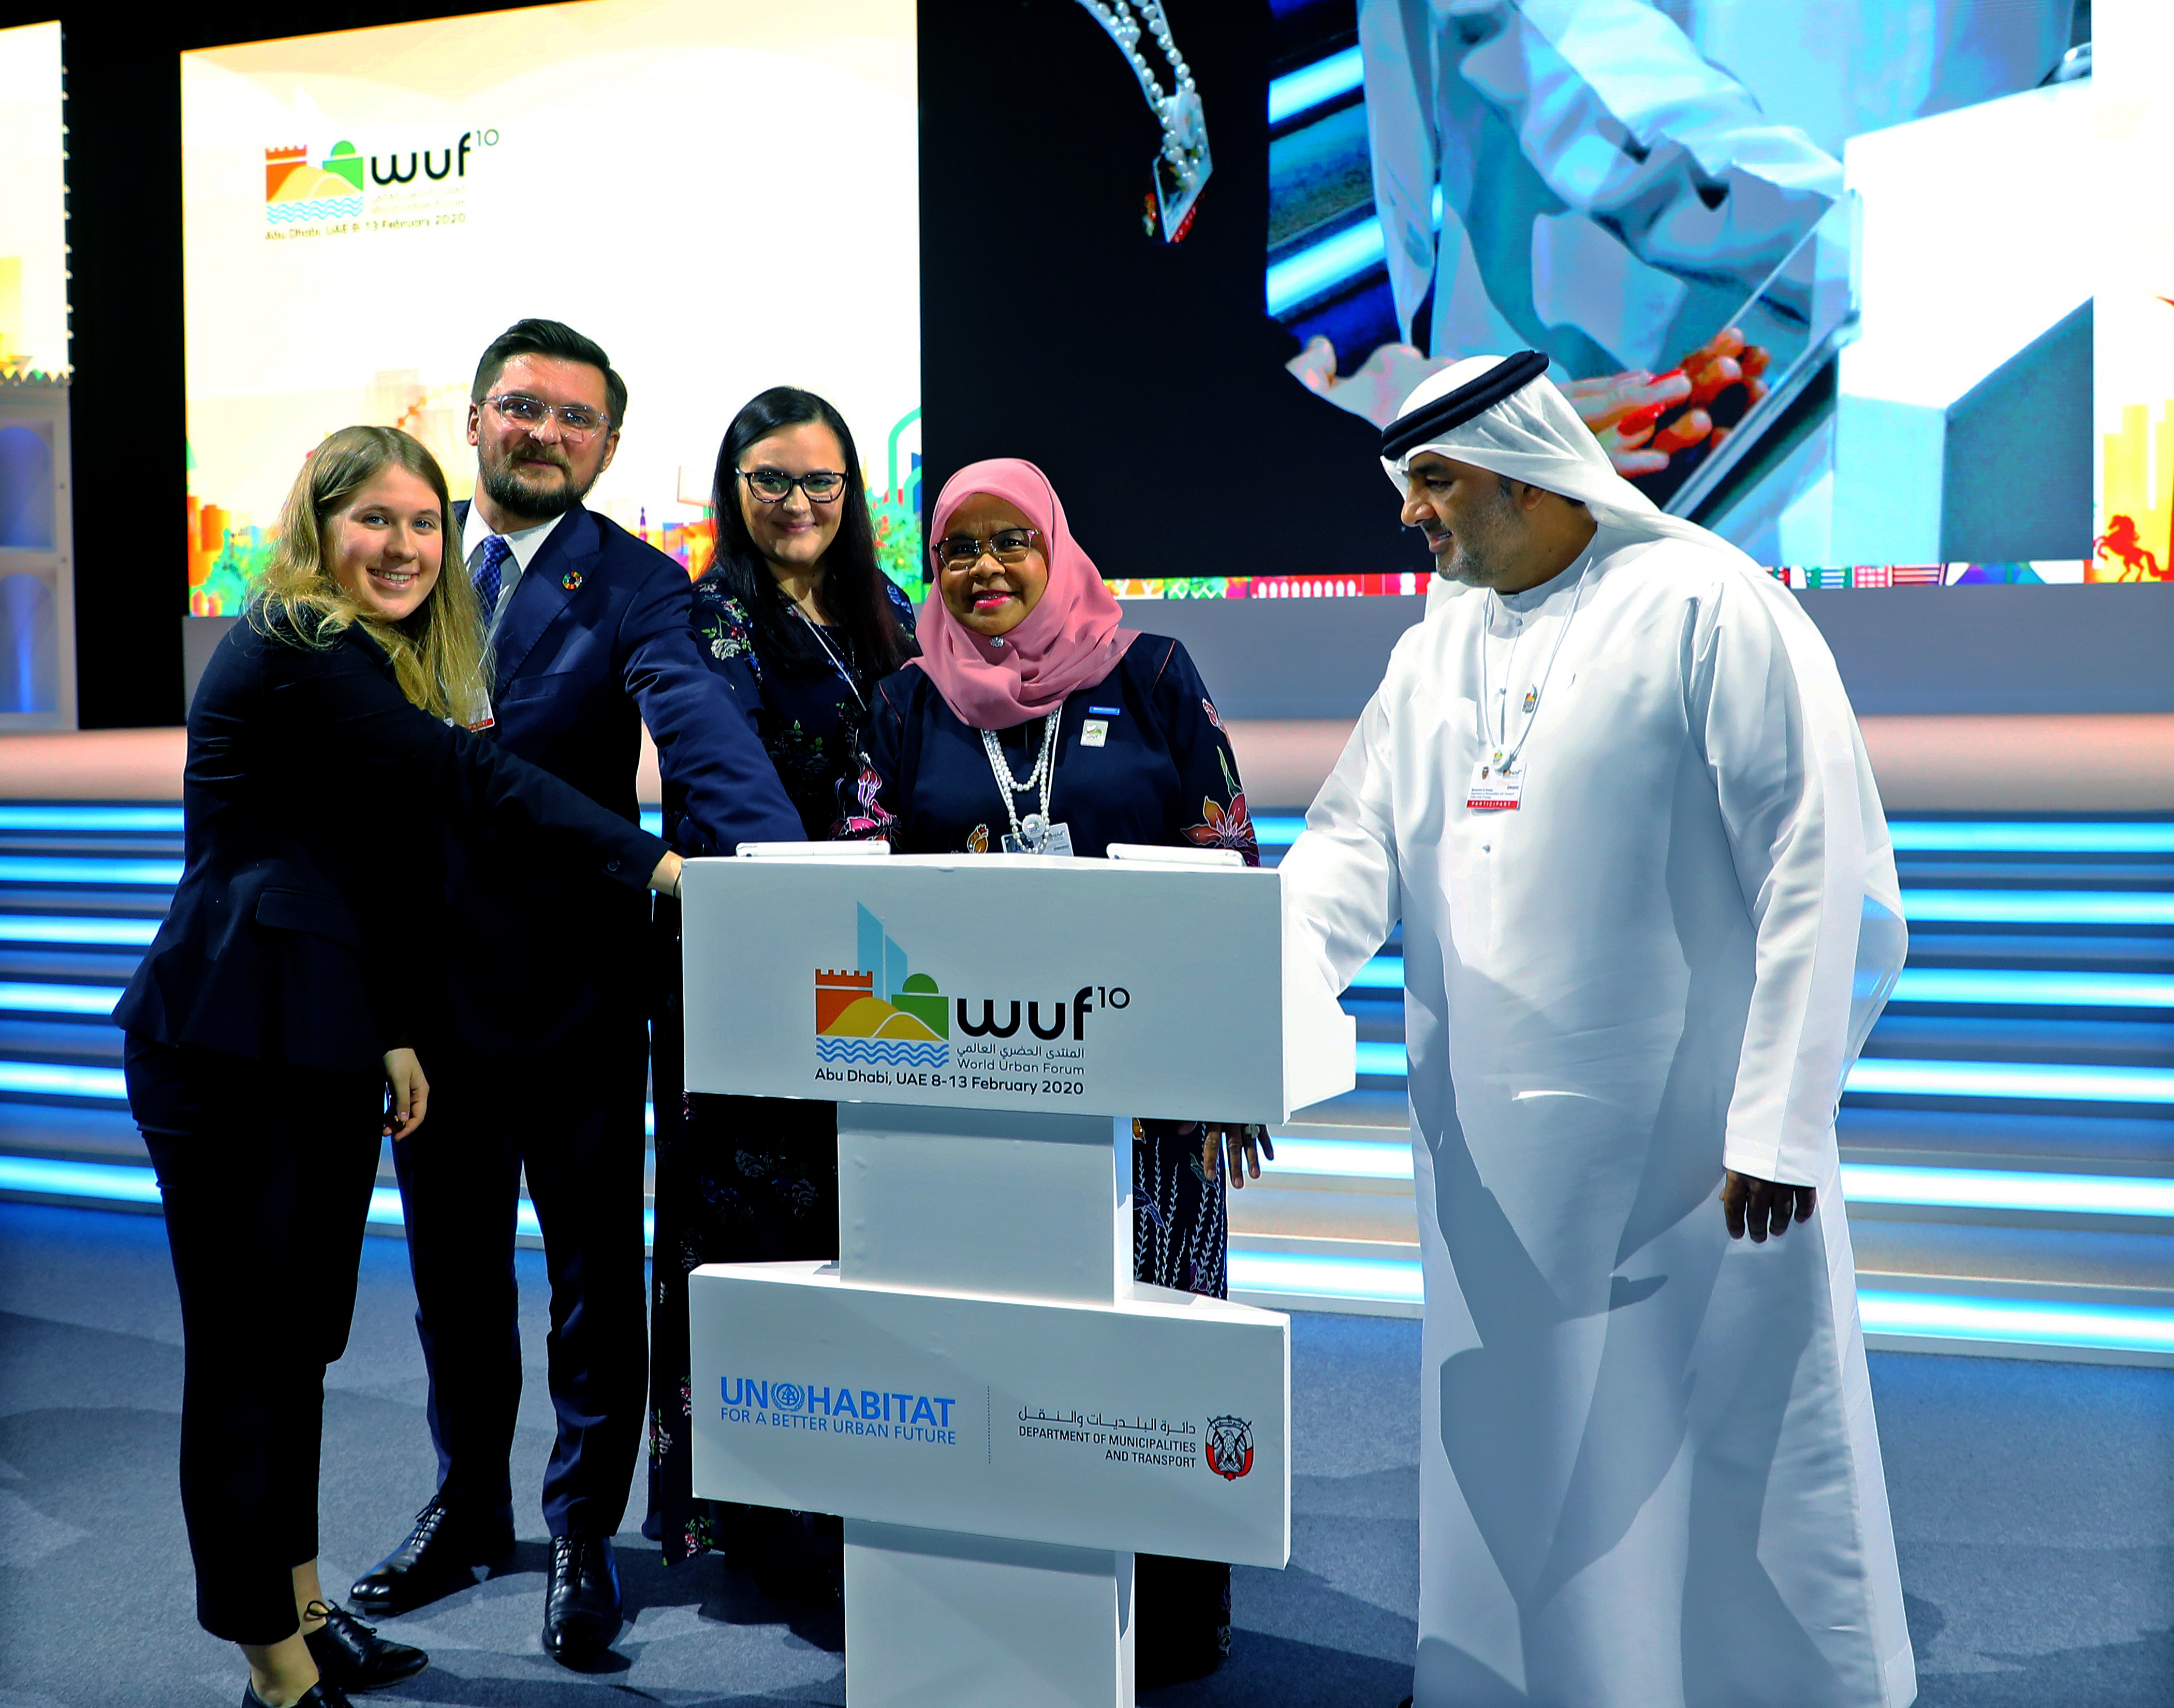 Launch of WUF11 with representatives from Poland UN-Habitat and Abu Dhabi